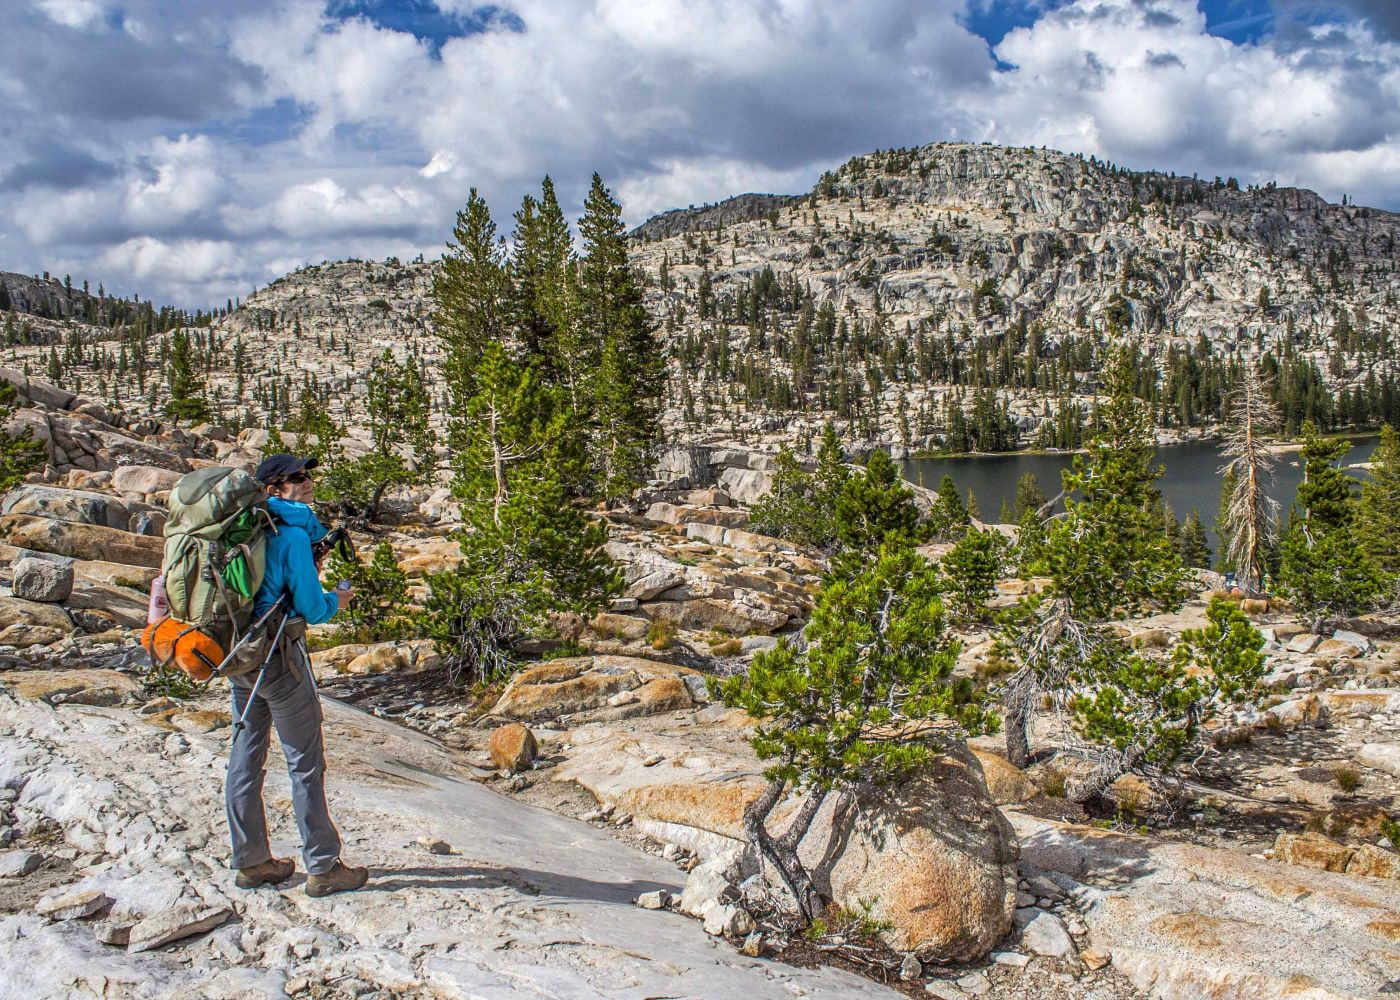 Backpacking the Sierra Alps: Yosemite National Park and